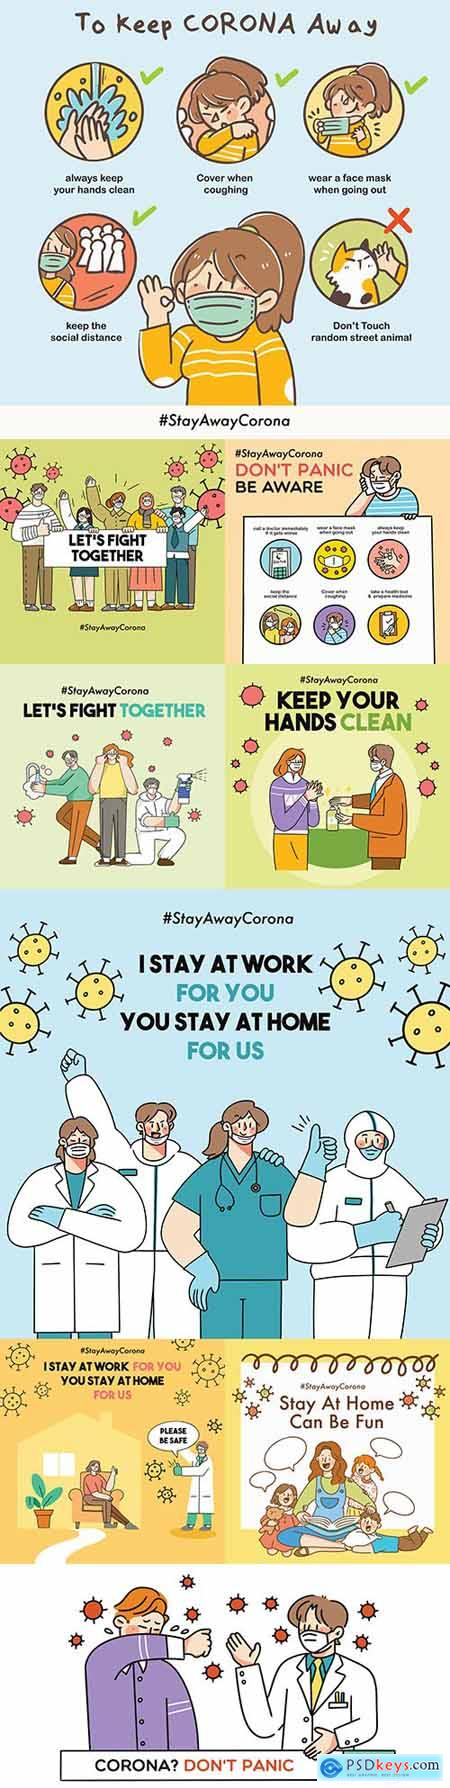 Stay home for safety and let s fight coronavirus together